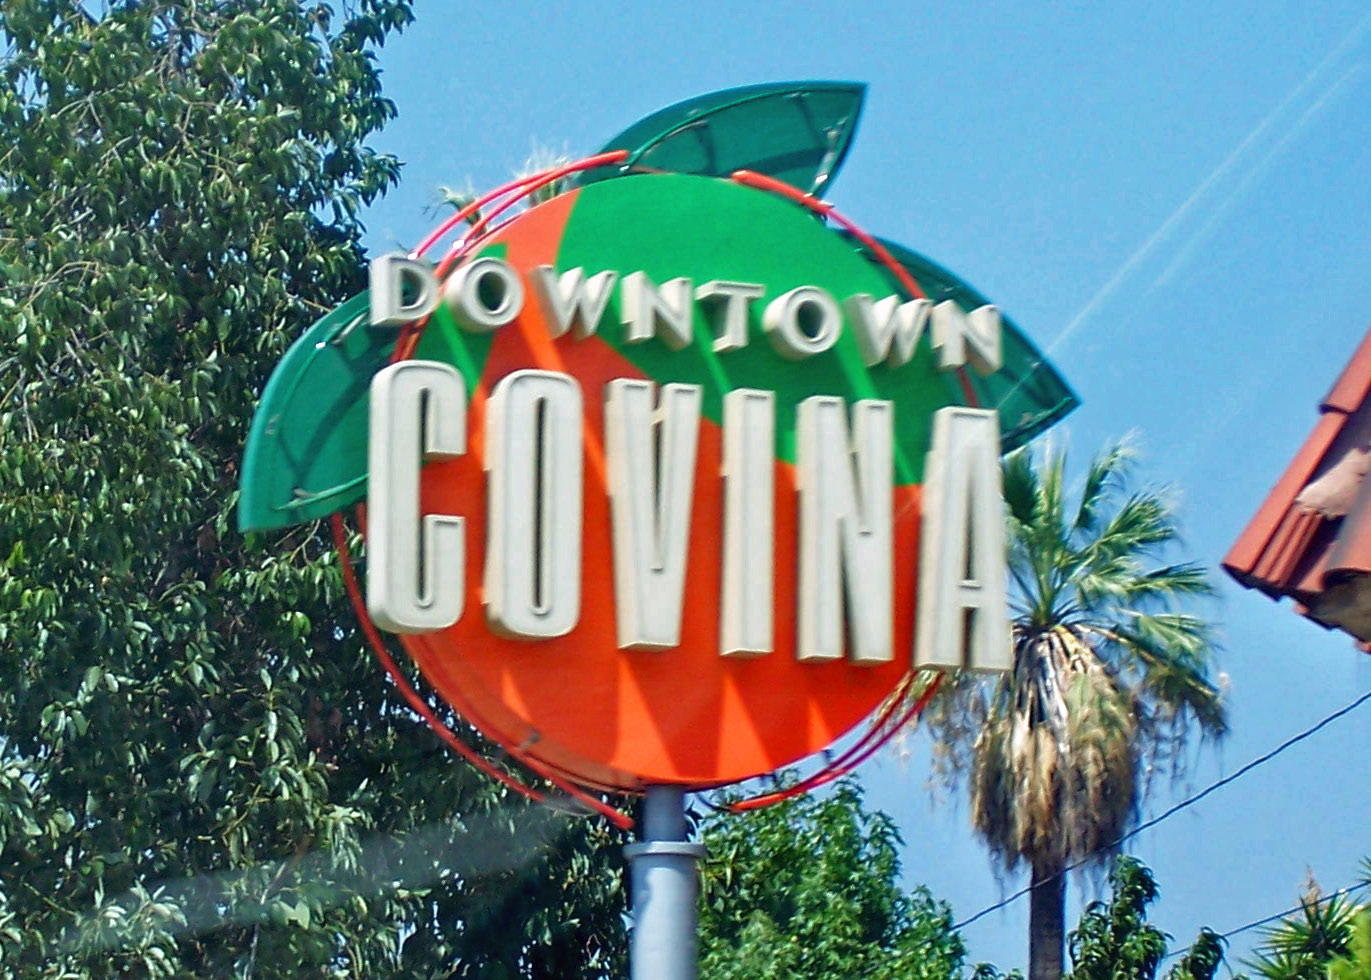 west covina Welcome to the official website of west covina unified school district, located approximately 20 minutes from downtown los angeles we serve the community of west covina, california in eastern san gabriel valley.